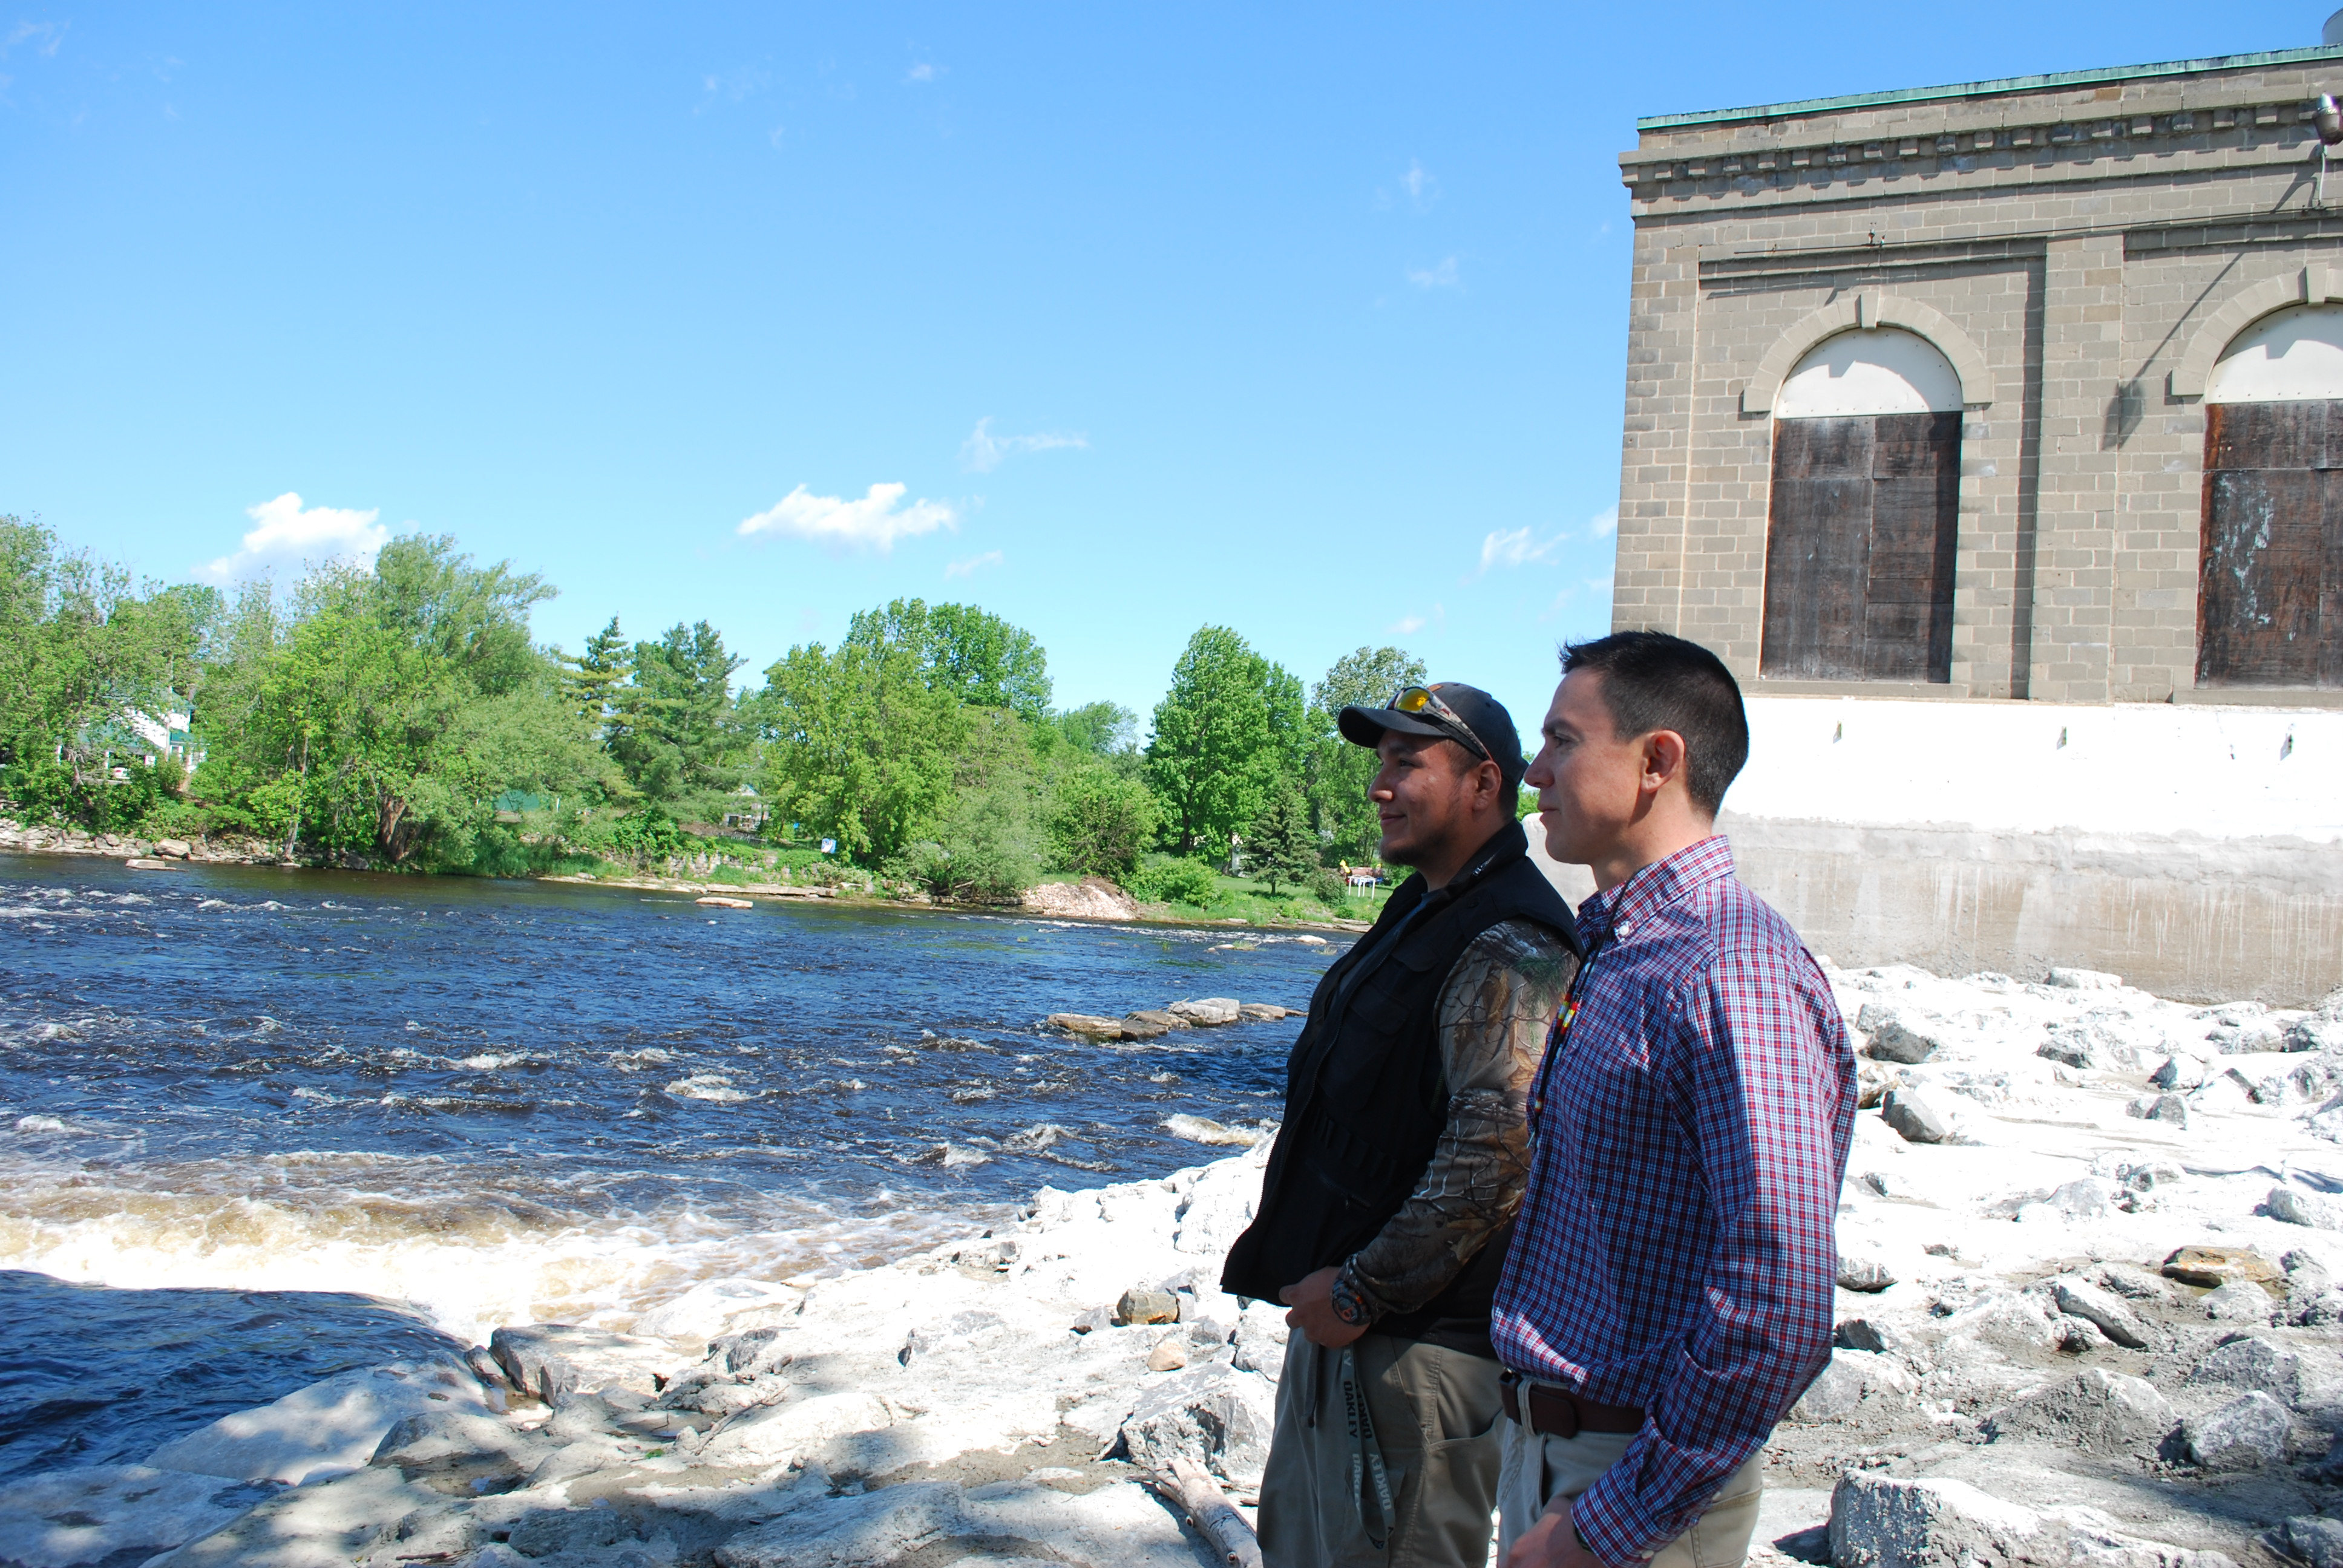 Caption: Tony David (right) and an apprentice, Angelo Johnson (left) look out over the water where the dam used to be., Credit: Veronica Volk